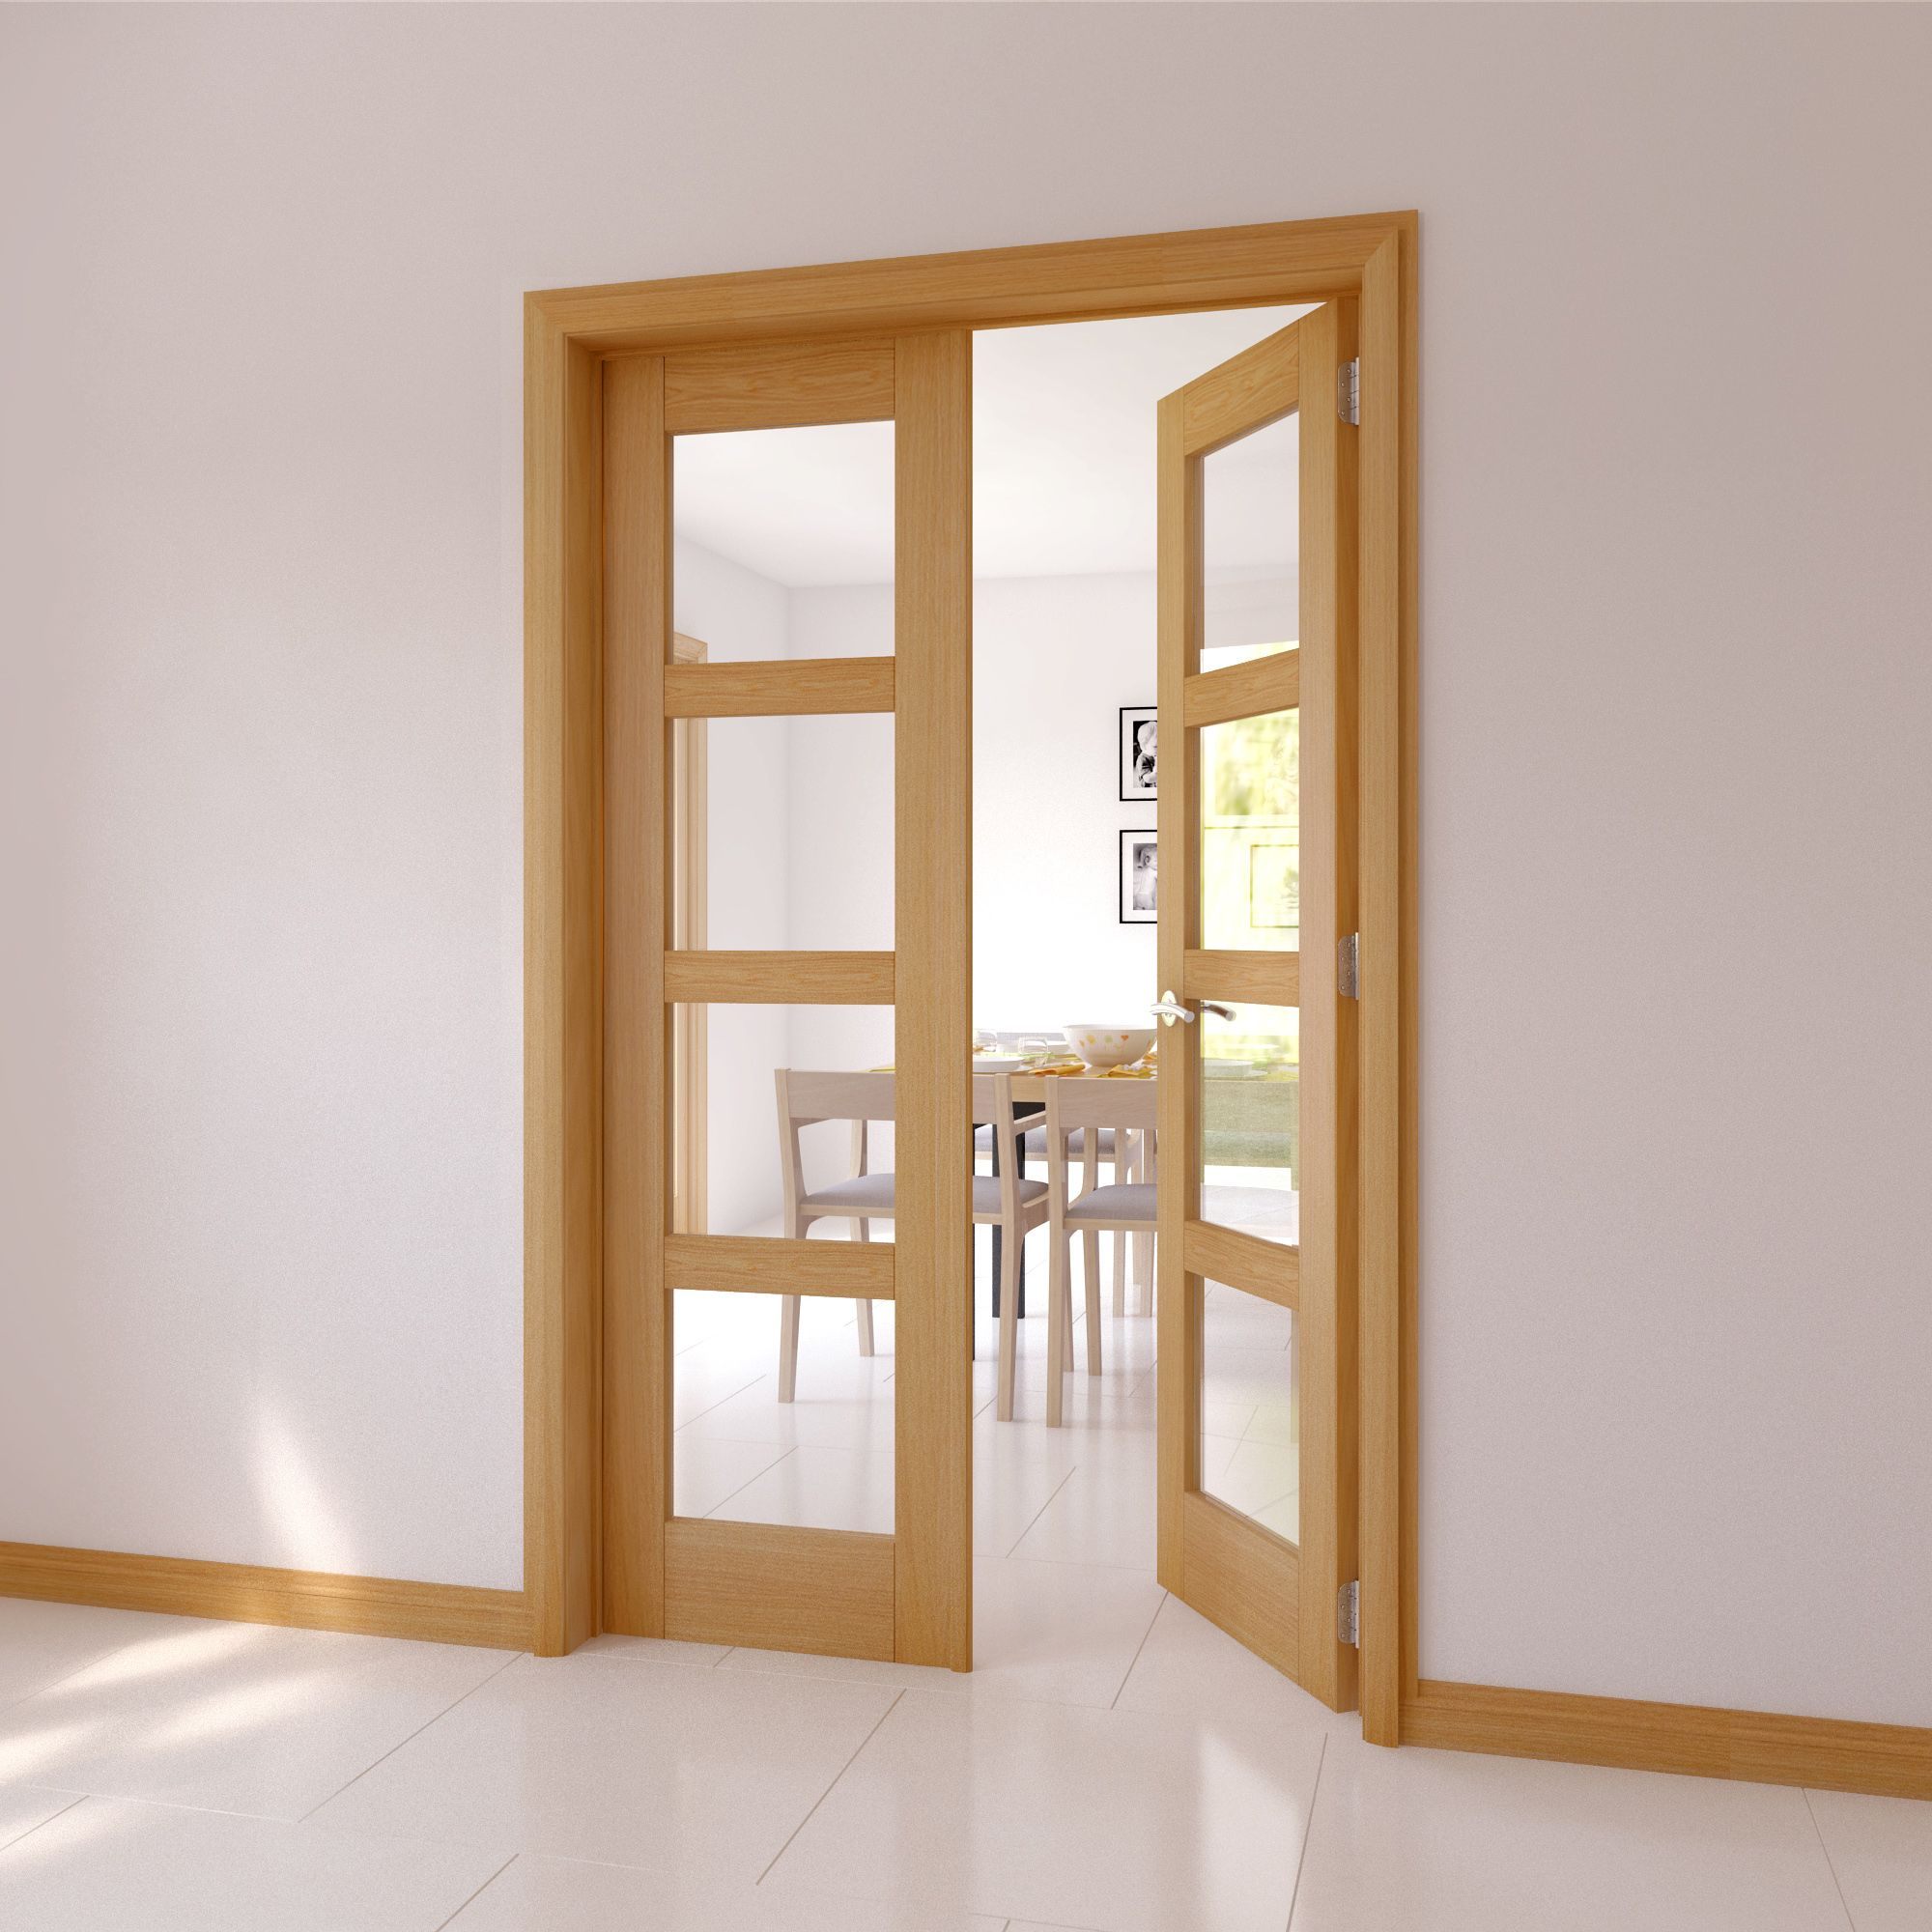 The incredible french interior doors b q photos interior for Interior french doors